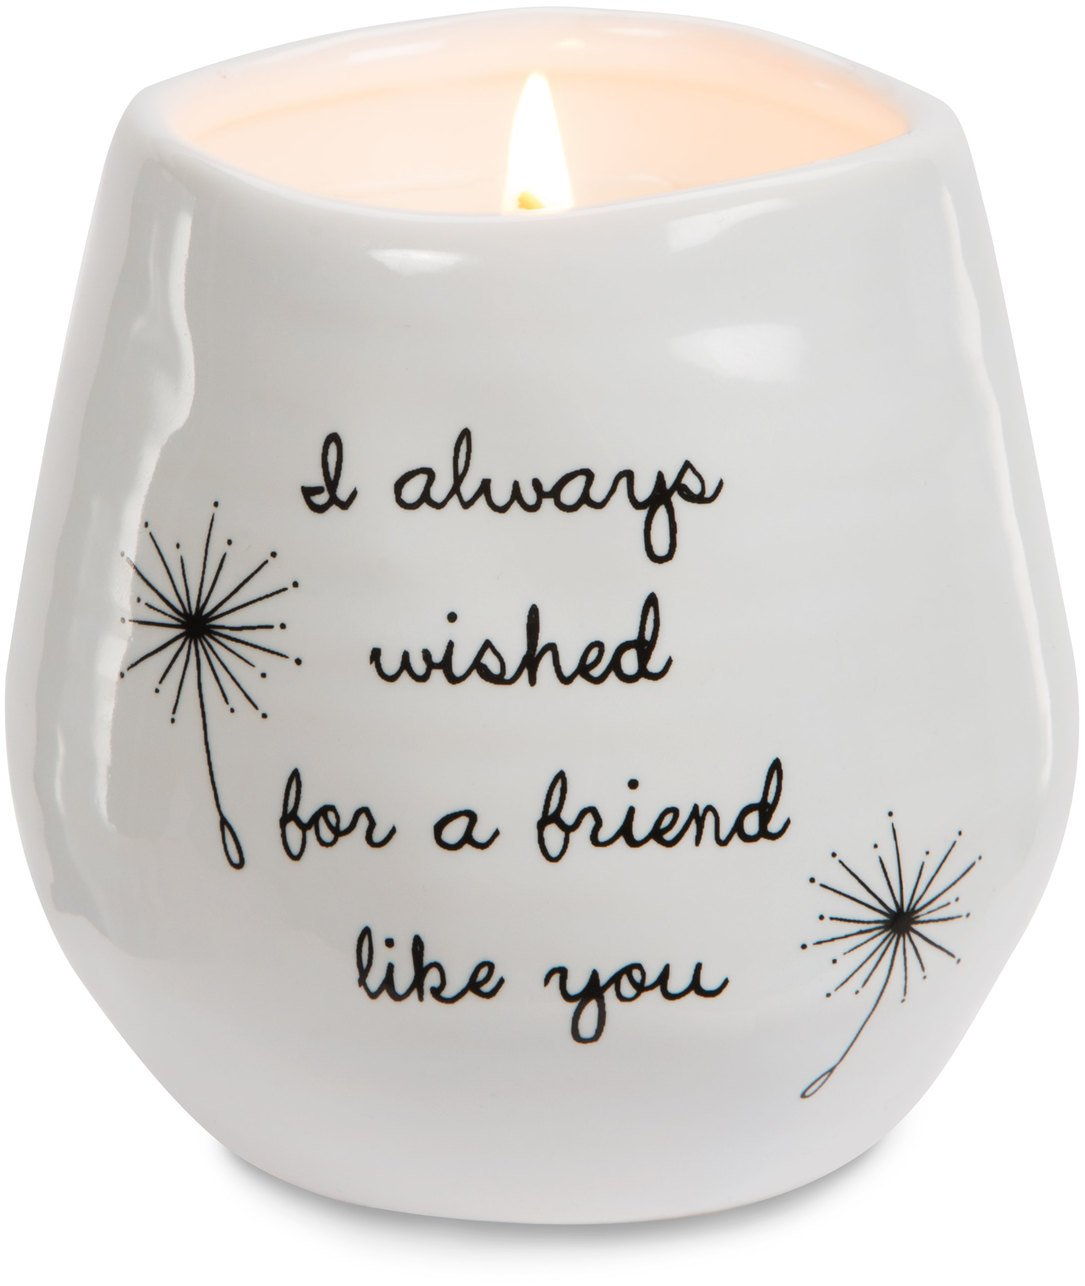 Dandelion Wishes 77114 Plain, I Always Wished for A Friend Like You White Ceramic Soy Serenity Scented Candle Pavilion Gift Company